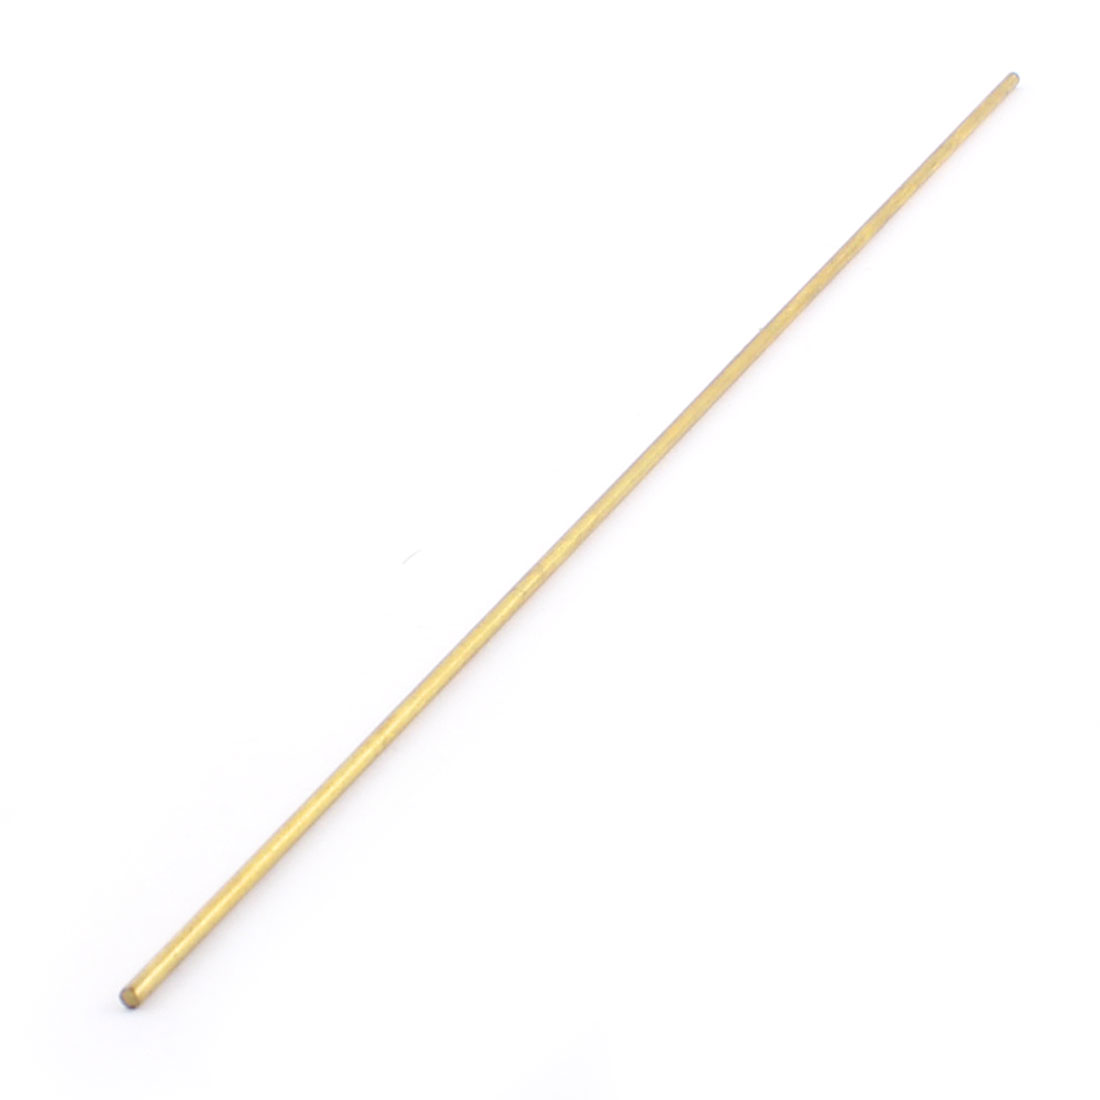 3mm Dia 350mm Length Brass Round Rod Shaft for RC Toy Car